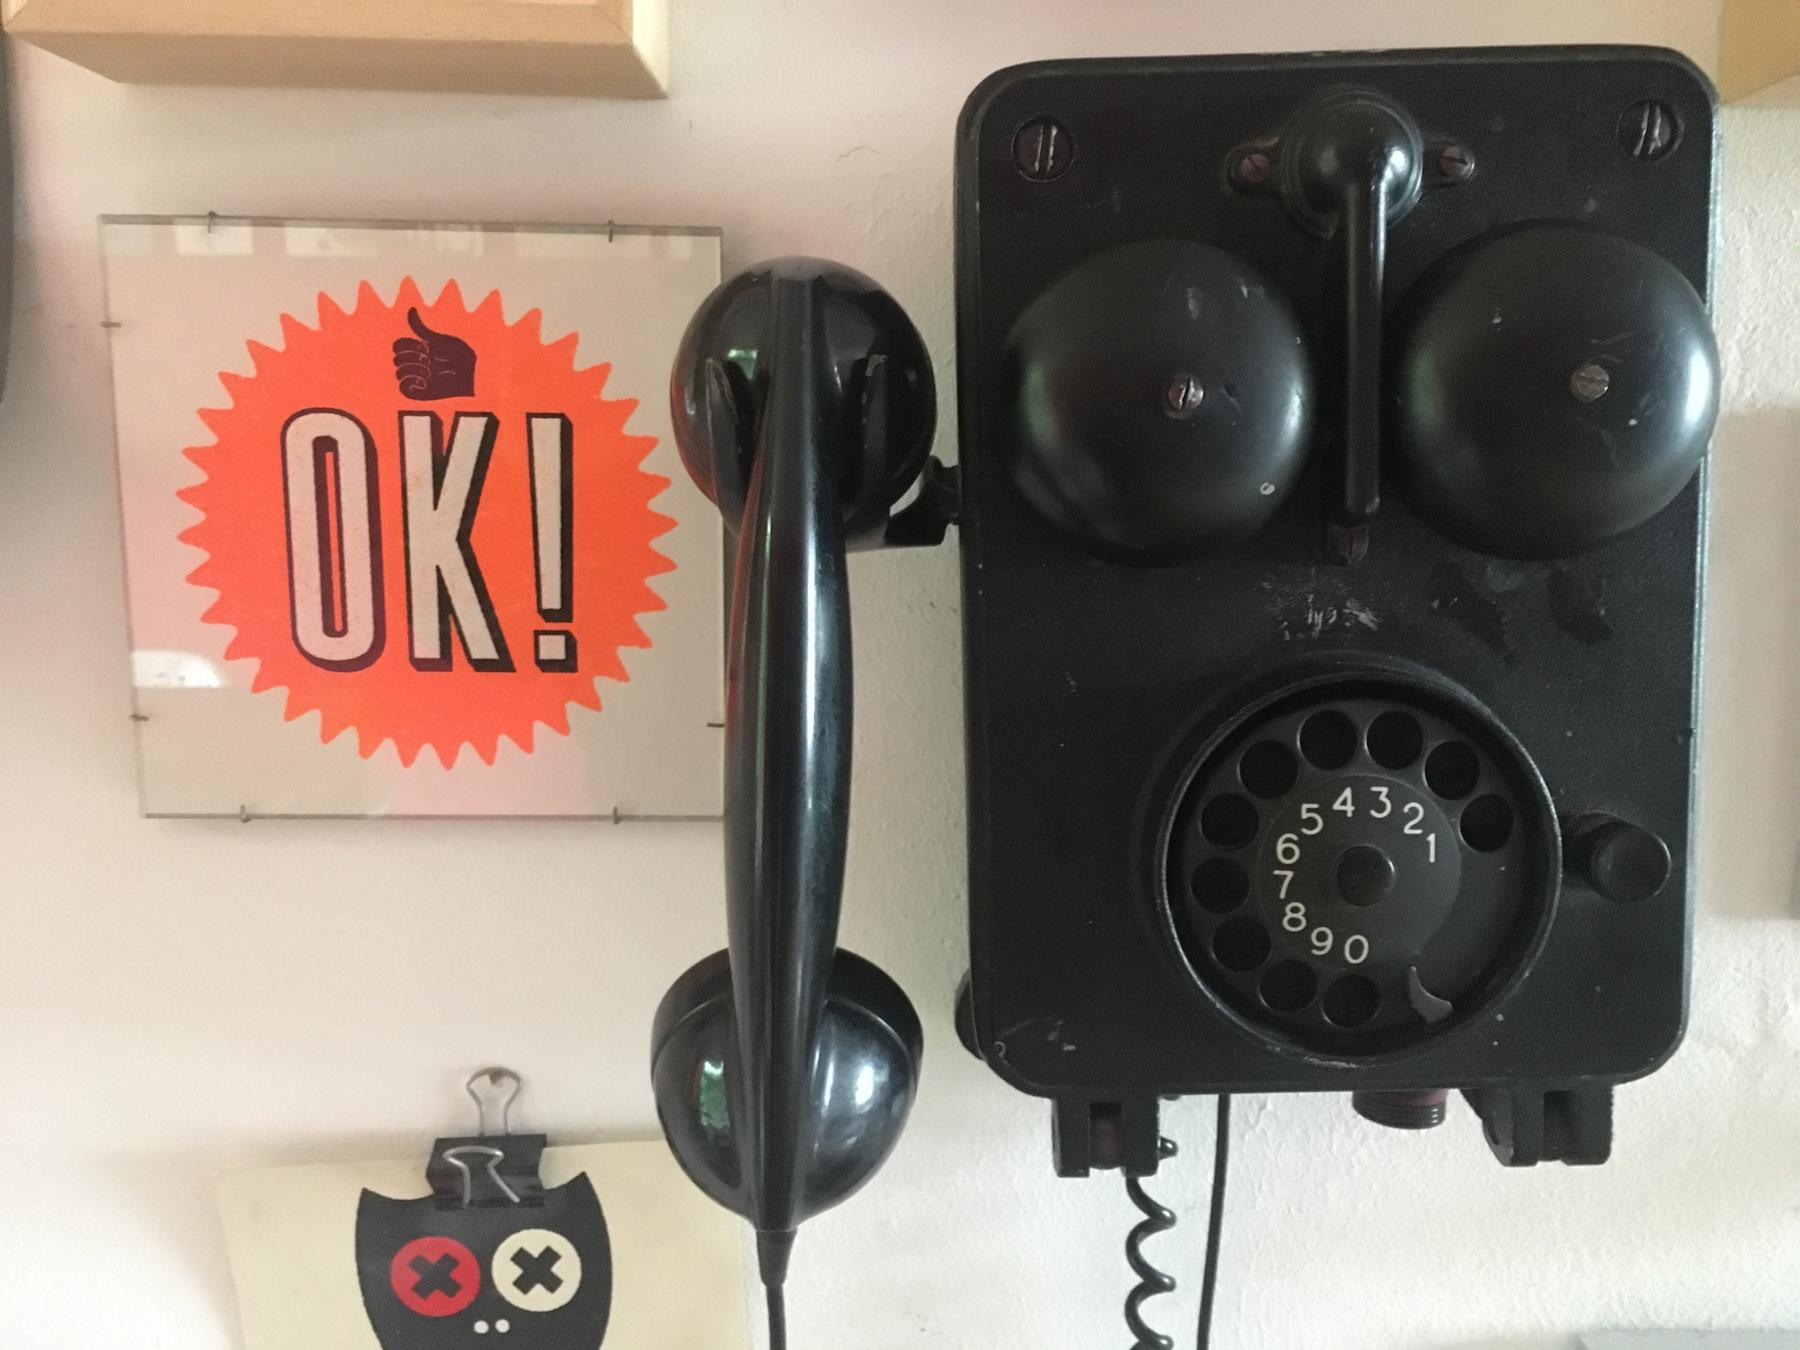 A very old industrial, black, cast iron rotary phone hanging on the wall.